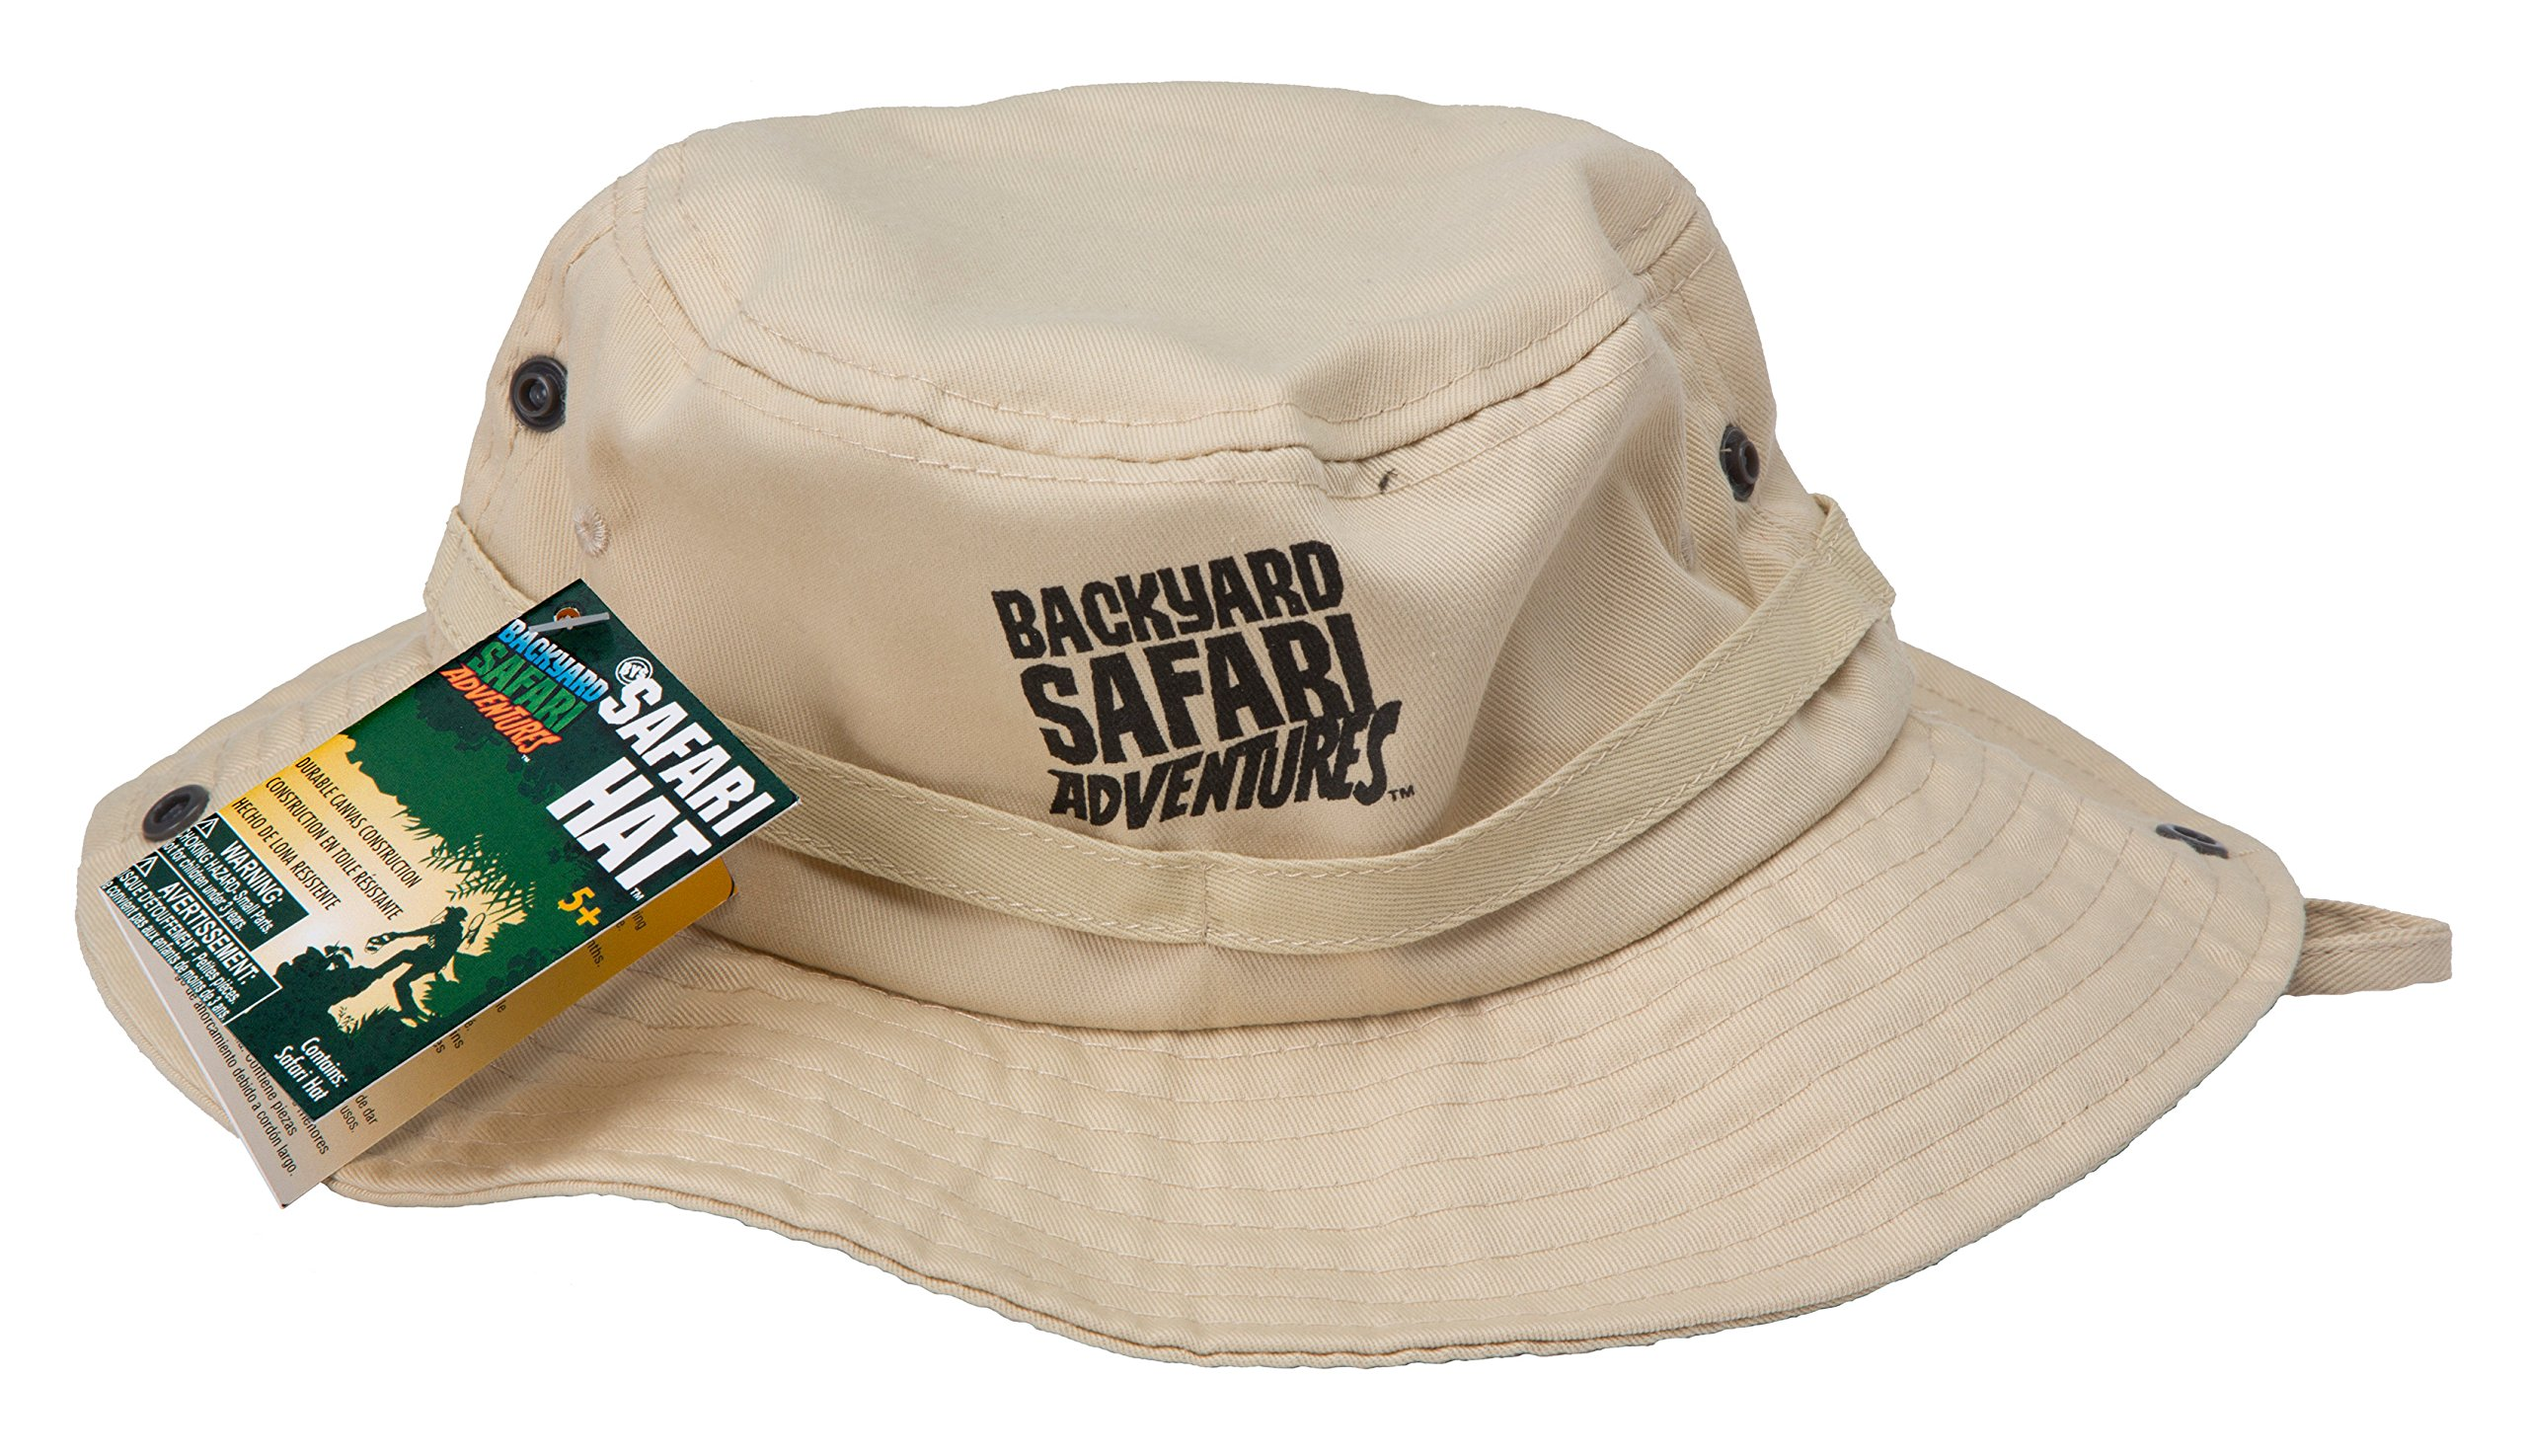 Backyard Safari Hat by Backyard Safari Company